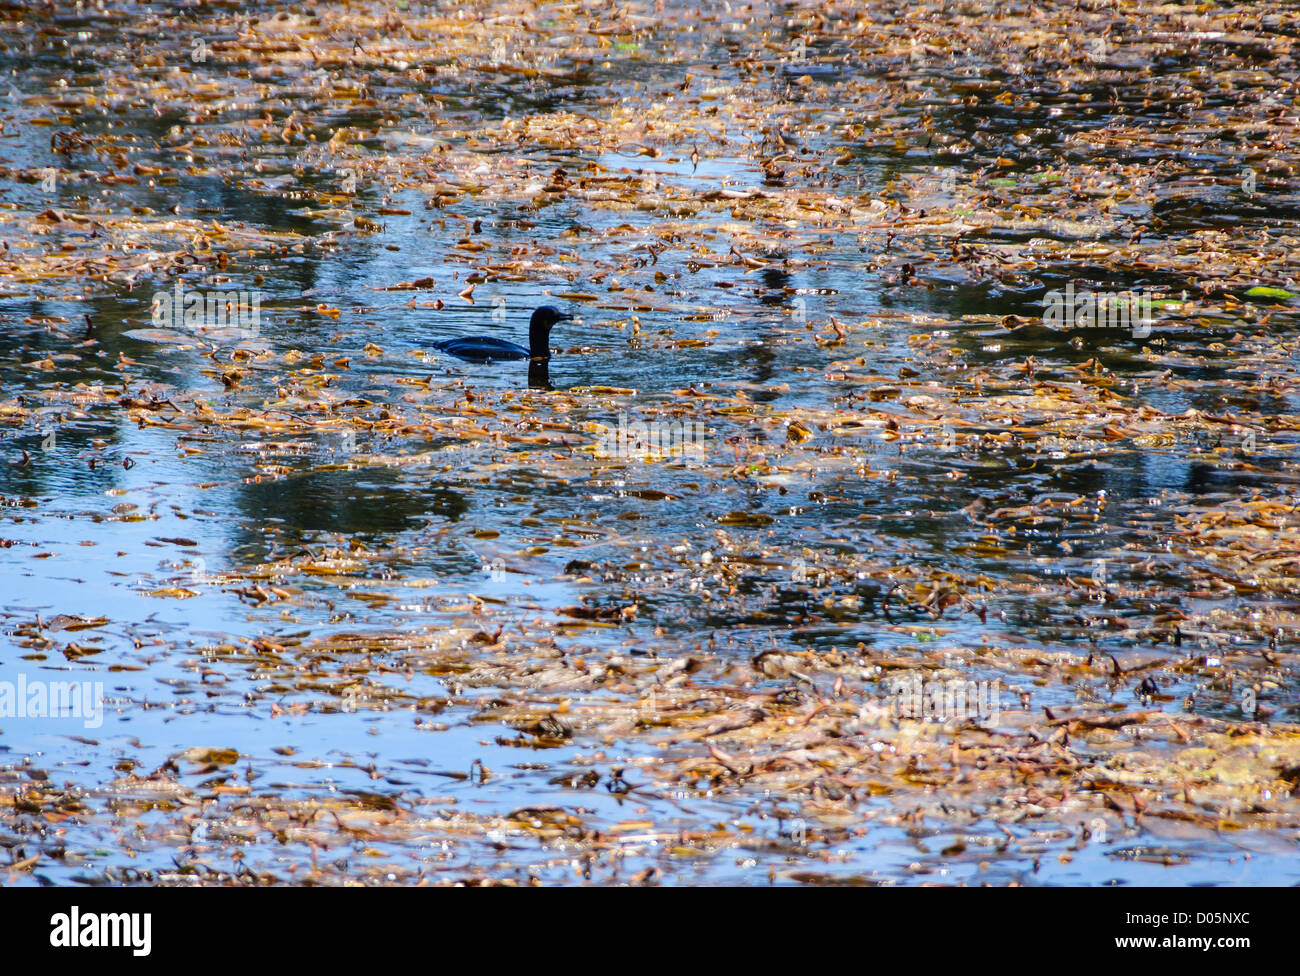 Point Lobos, California, nature reserve and scenic headland. Shag in seaweed. - Stock Image